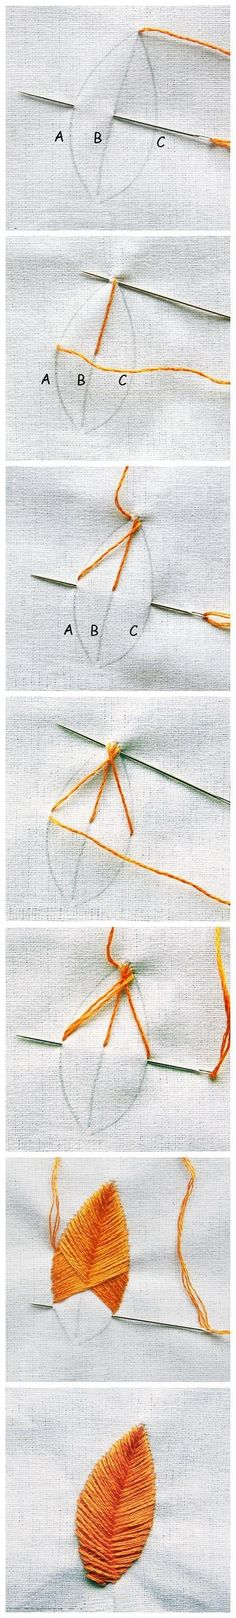 Embroidery leaf technique